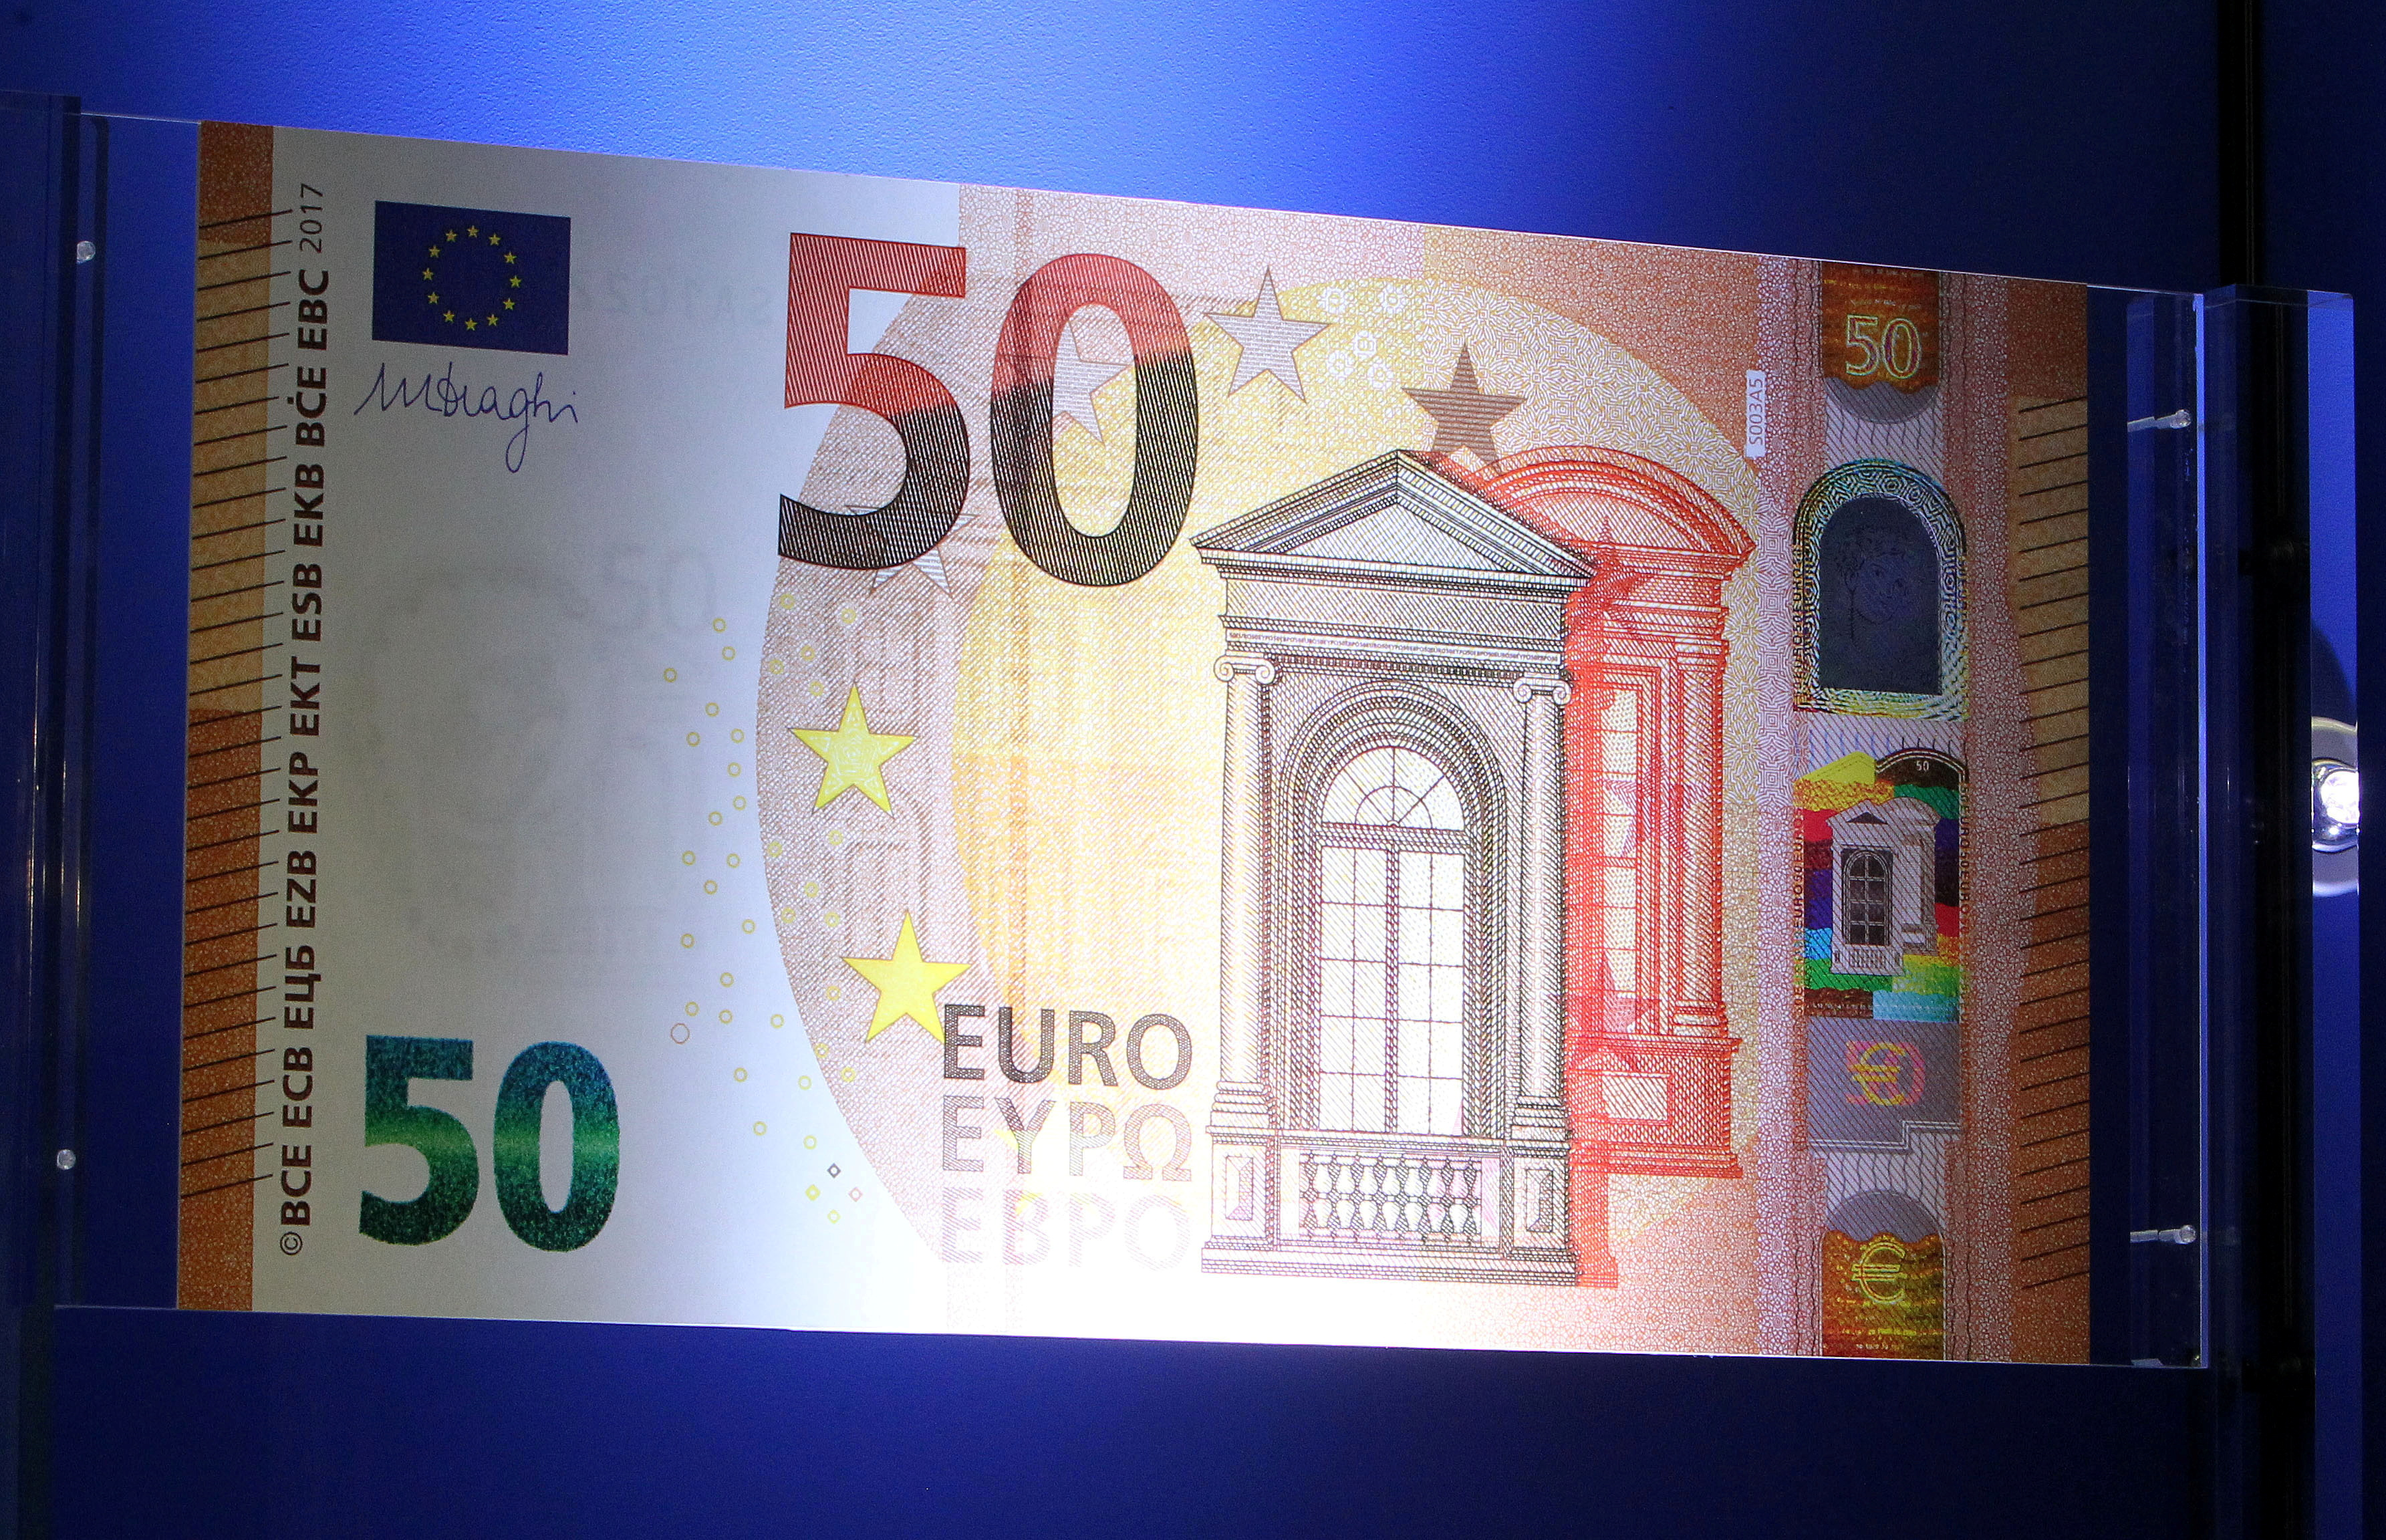 The European Central Bank (ECB) presents the new 50 euro note at the bank's headquarters in Frankfurt, Germany, July 5, 2016.  REUTERS/Ralph Orlowski